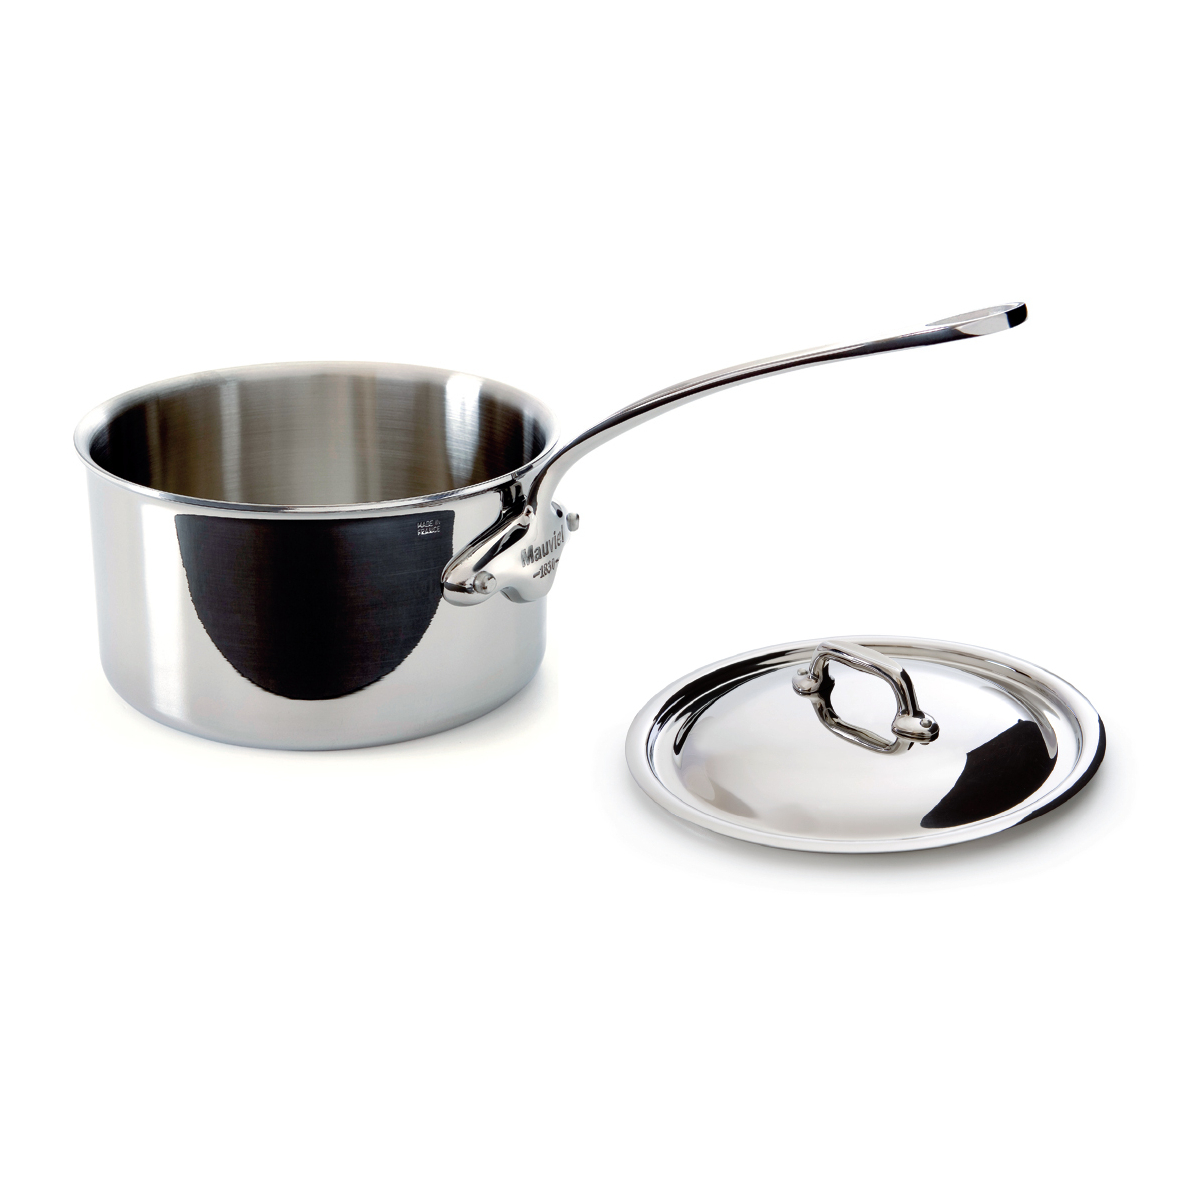 Mauviel M'cook Stainless Steel 0.9 Quart Covered Saucepan